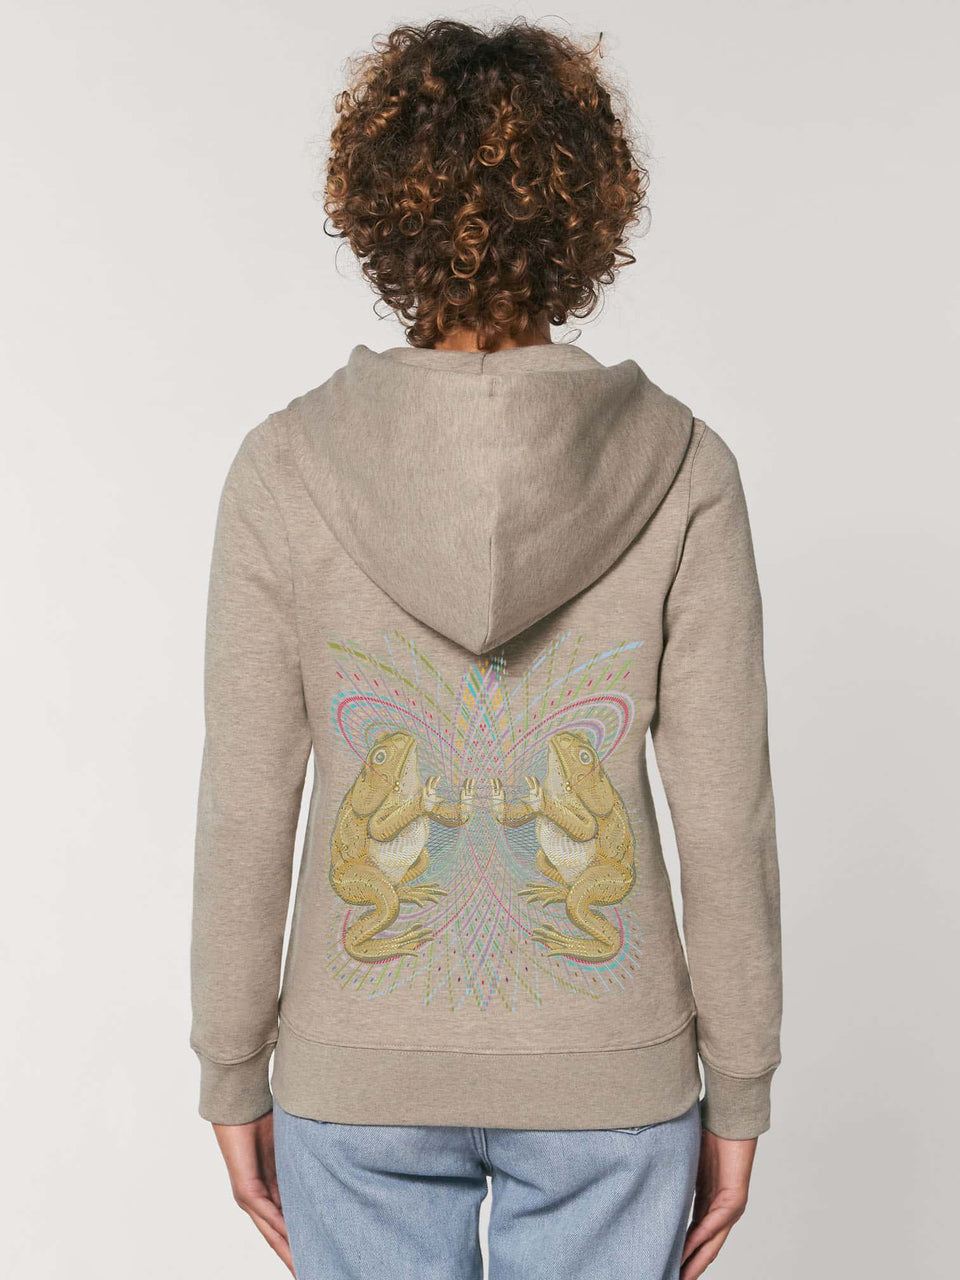 Bufo Alvarius Made To Order  Women zip-thru hoodie sweatshirt - Heather Sand